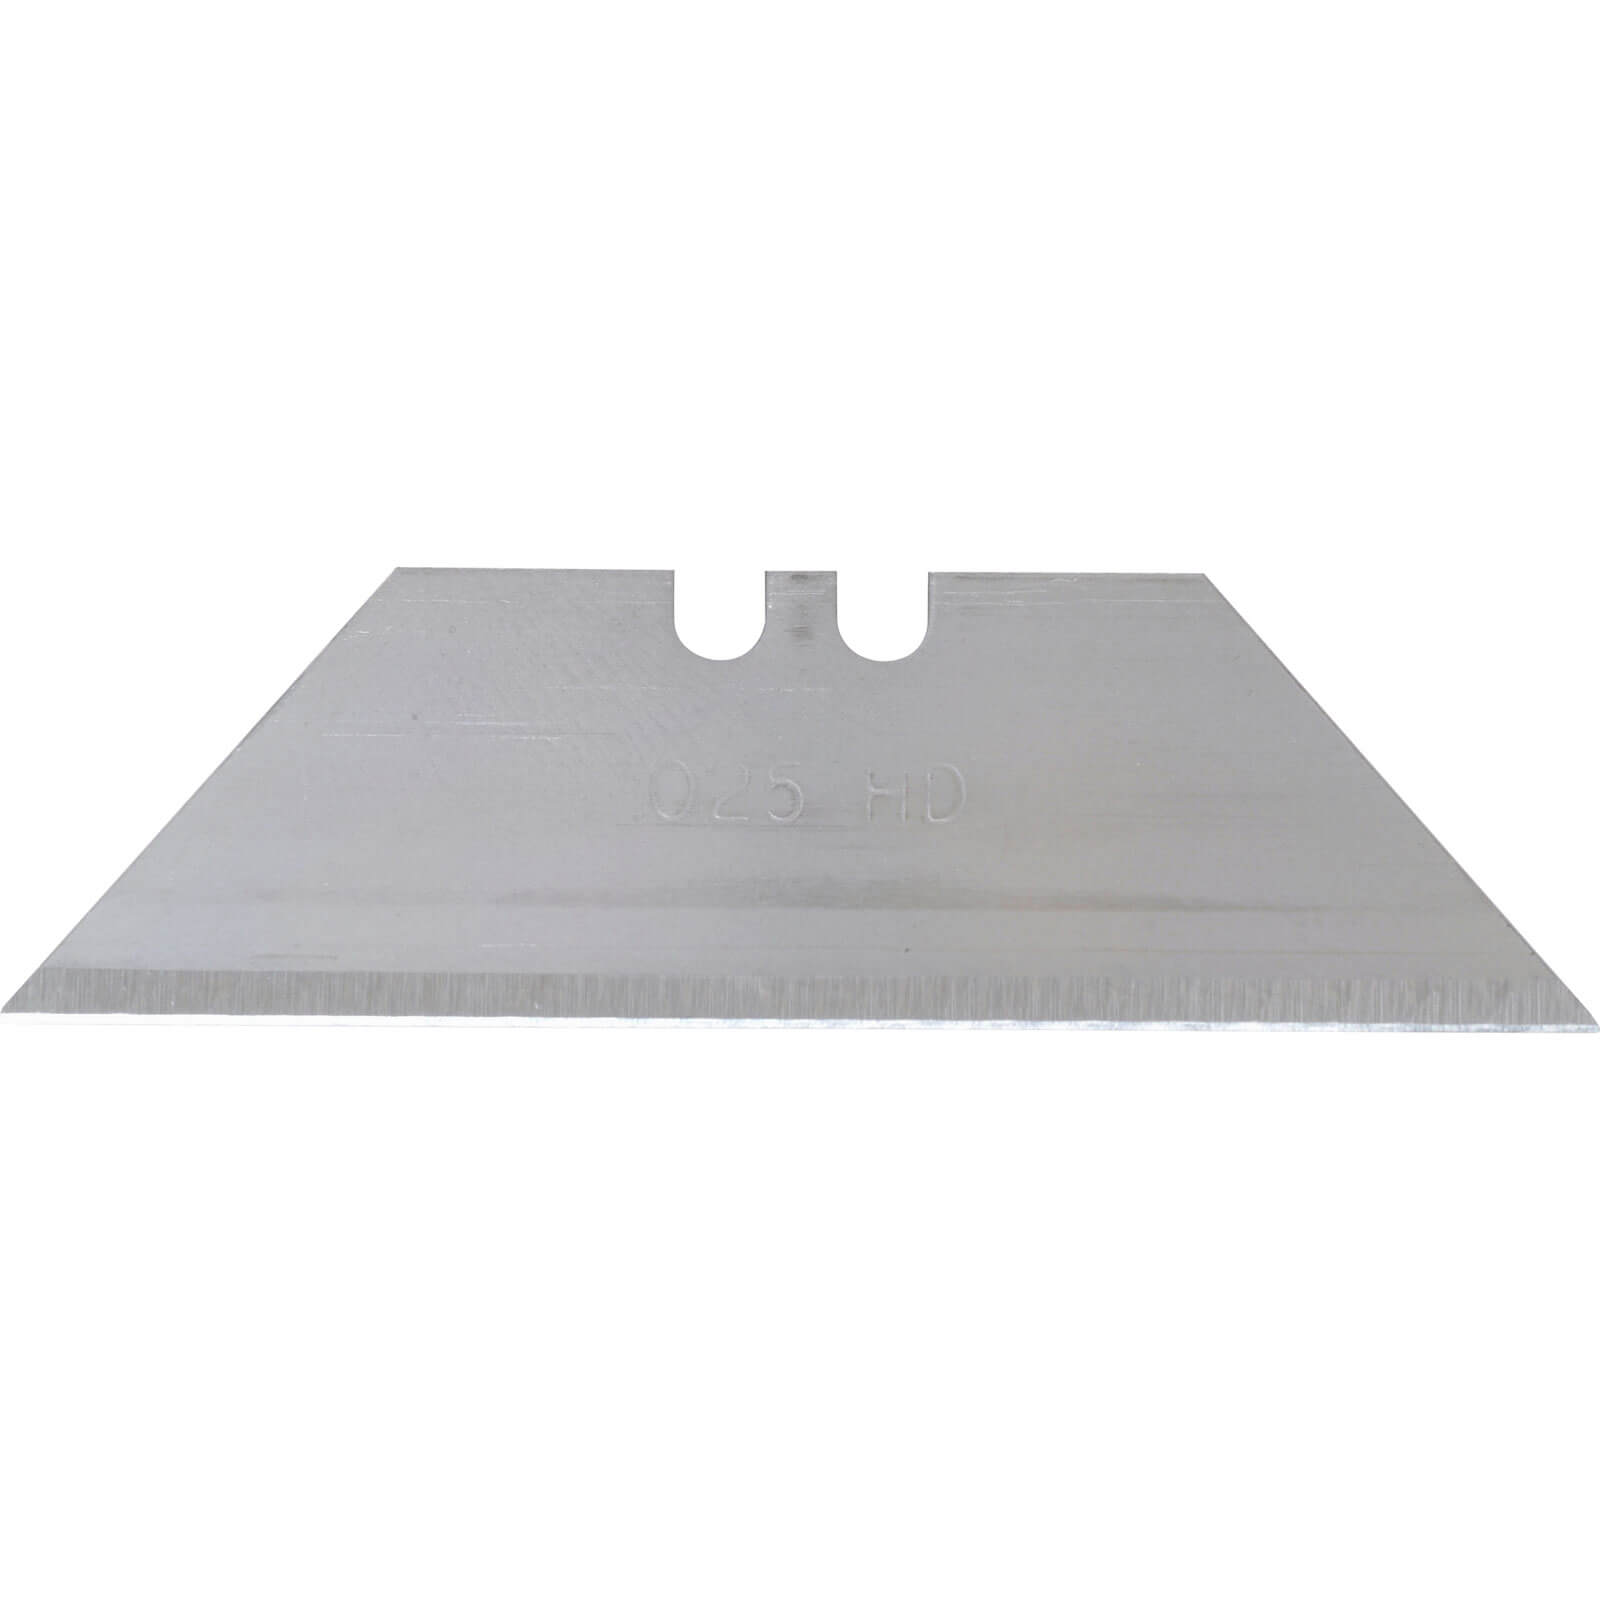 Image of Personna American Line Heavy Duty Trimming Blades Pack of 10